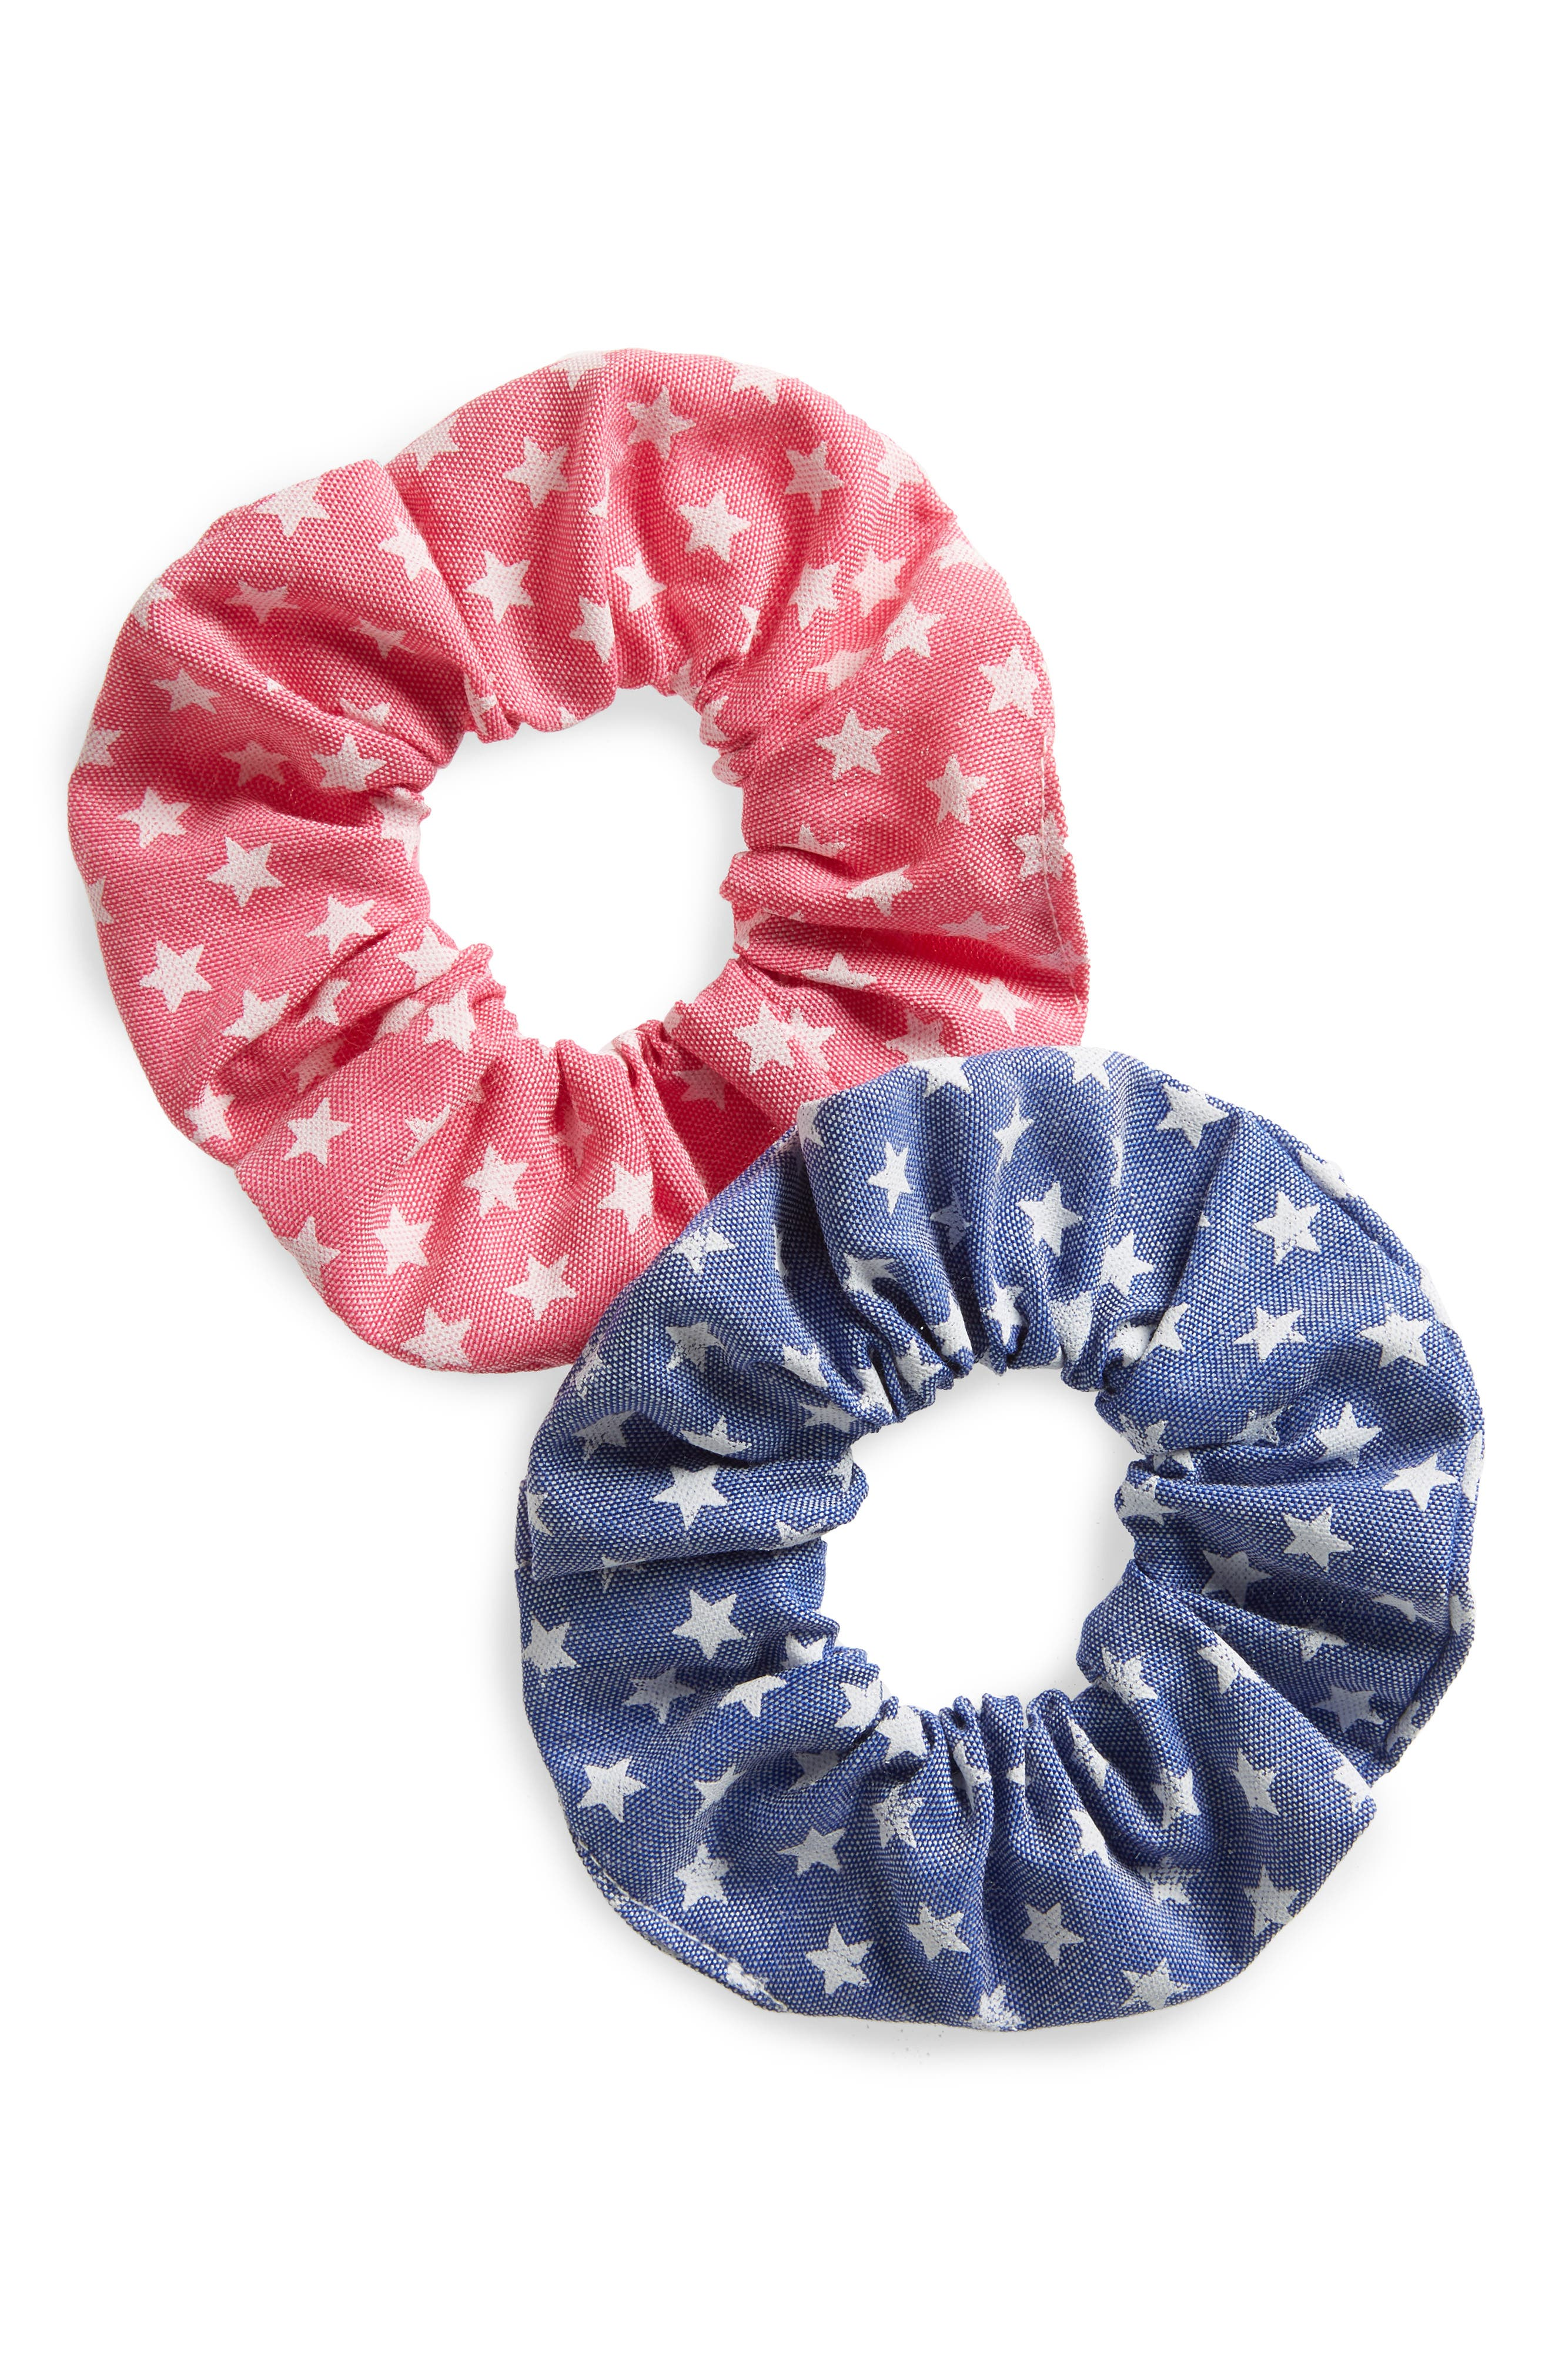 Stars Scrunchie,                             Main thumbnail 1, color,                             Red/ Blue